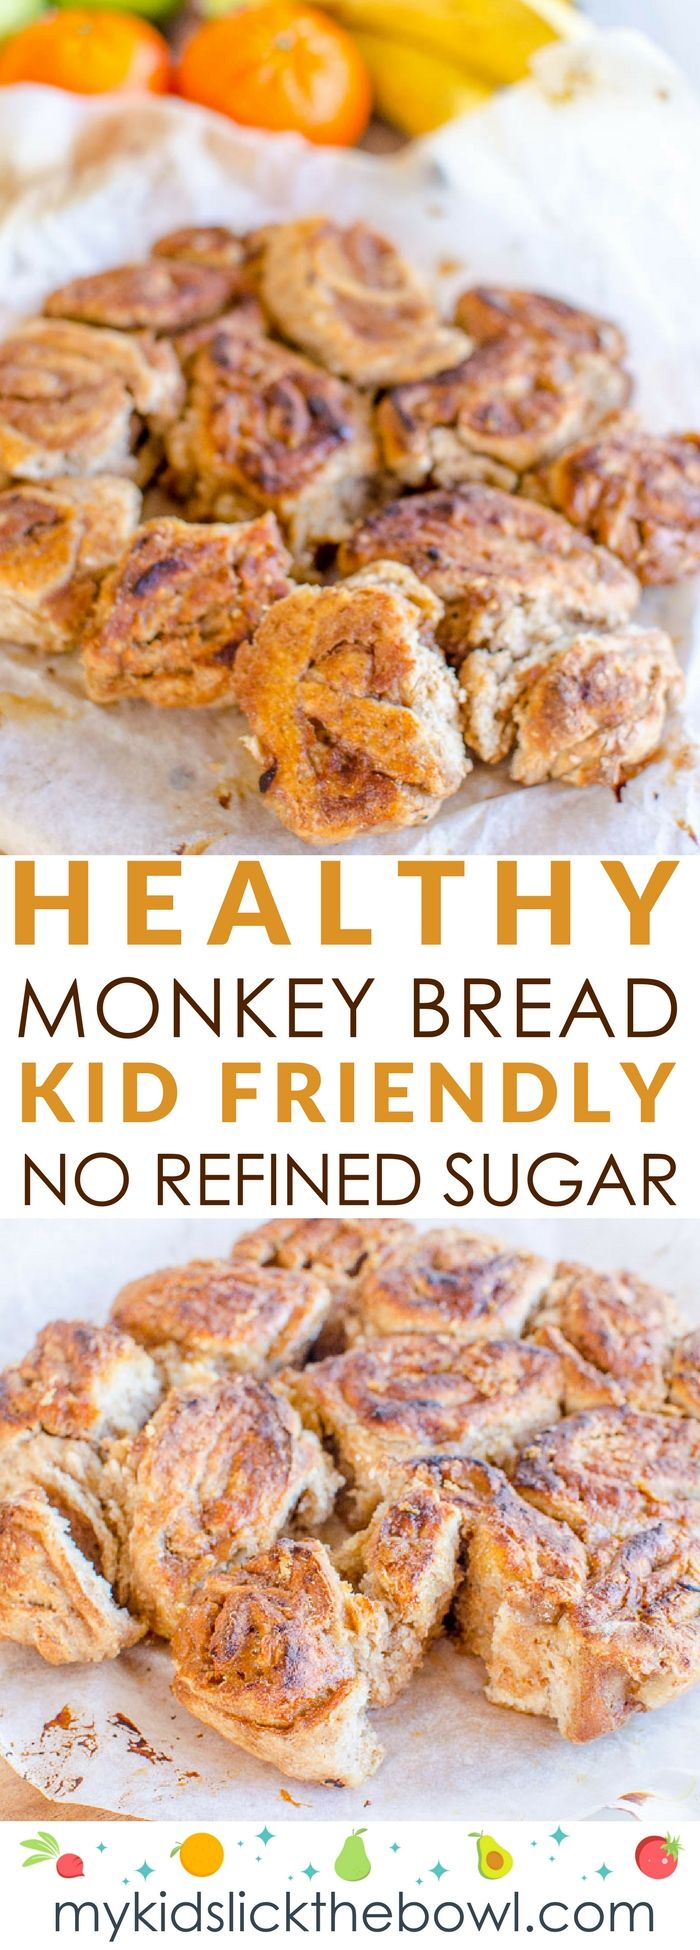 Healthy monkey bread recipe an easy refined sugar-free take on a classic, sweetened with fruit perfect kid friendly snack #monkeybread #sugarfree #healthykids #snack